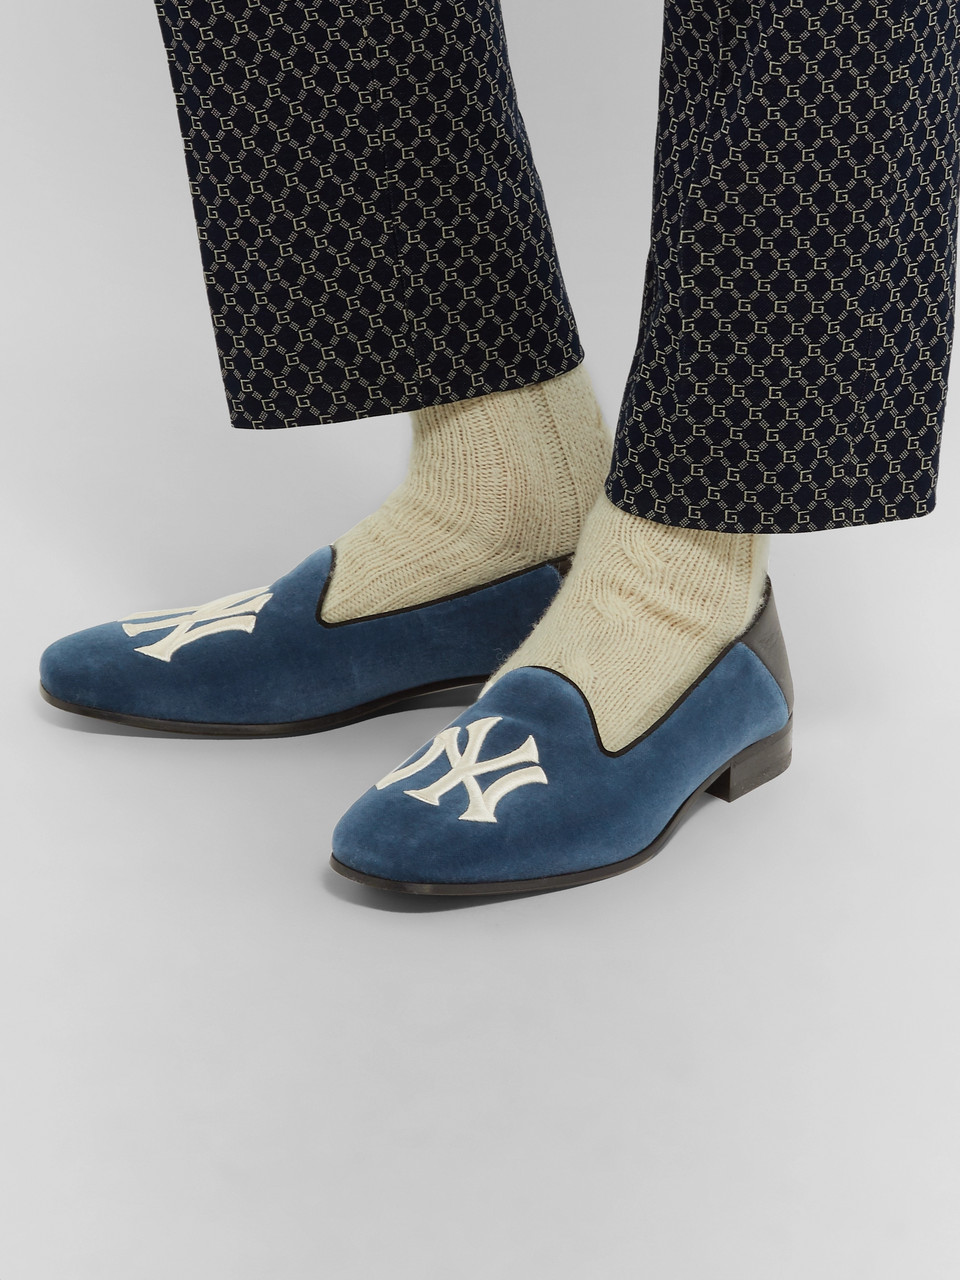 Gucci + New York Yankees Gallipoli Collapsible-Heel Leather-Trimmed Embroidered Velvet Loafers